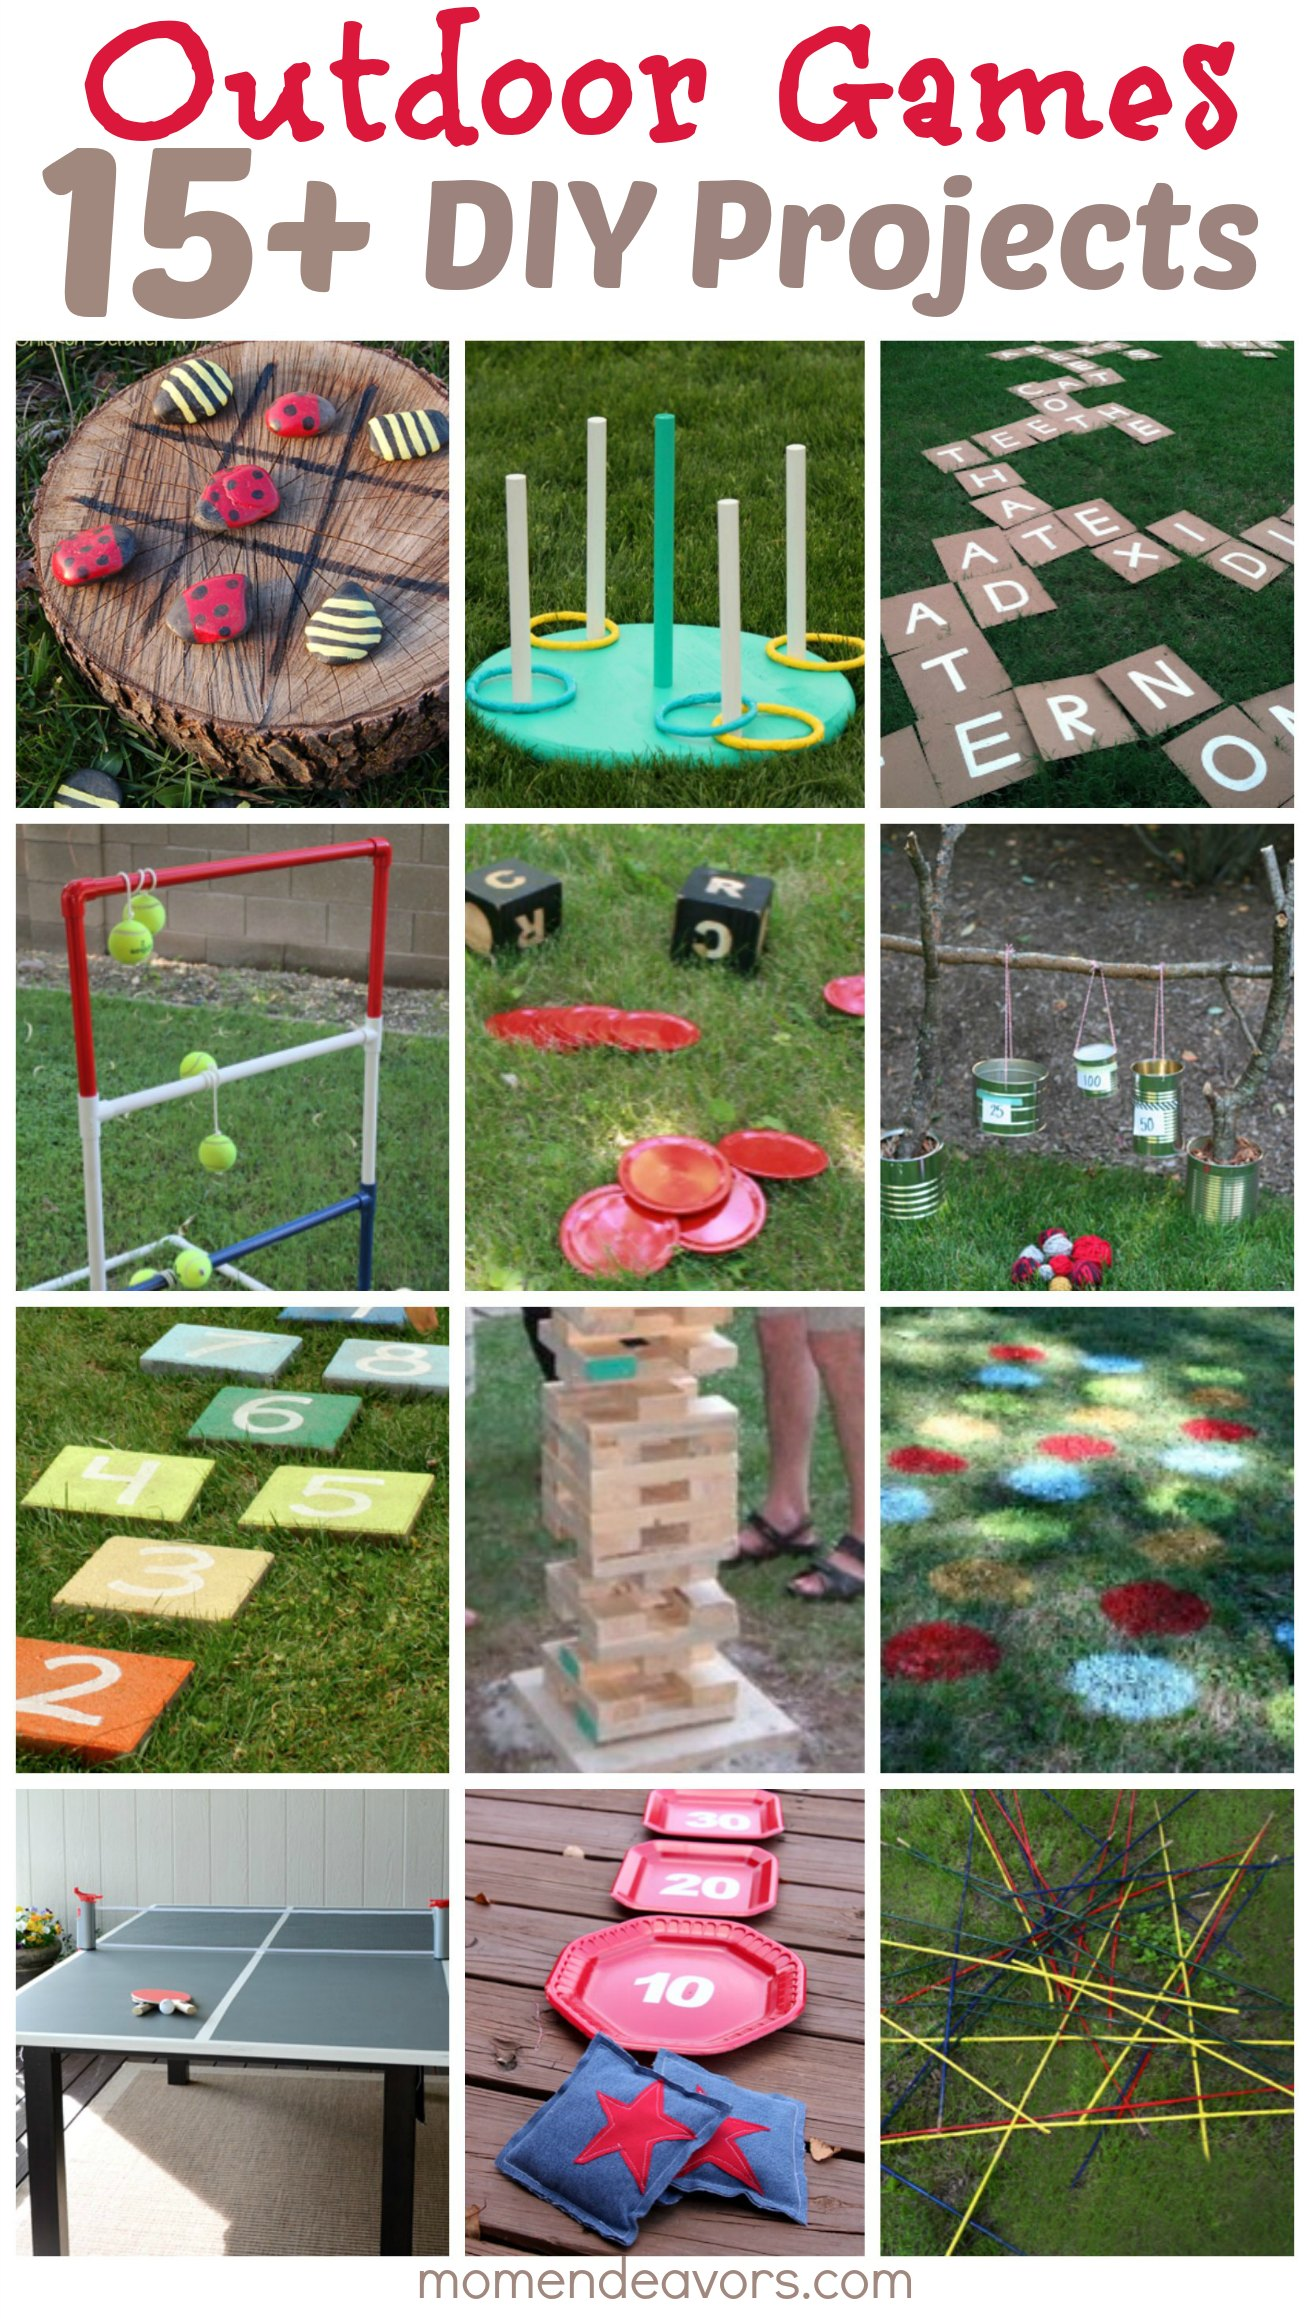 DIY Outdoor Games – 15 Awesome Project Ideas for Backyard Fun